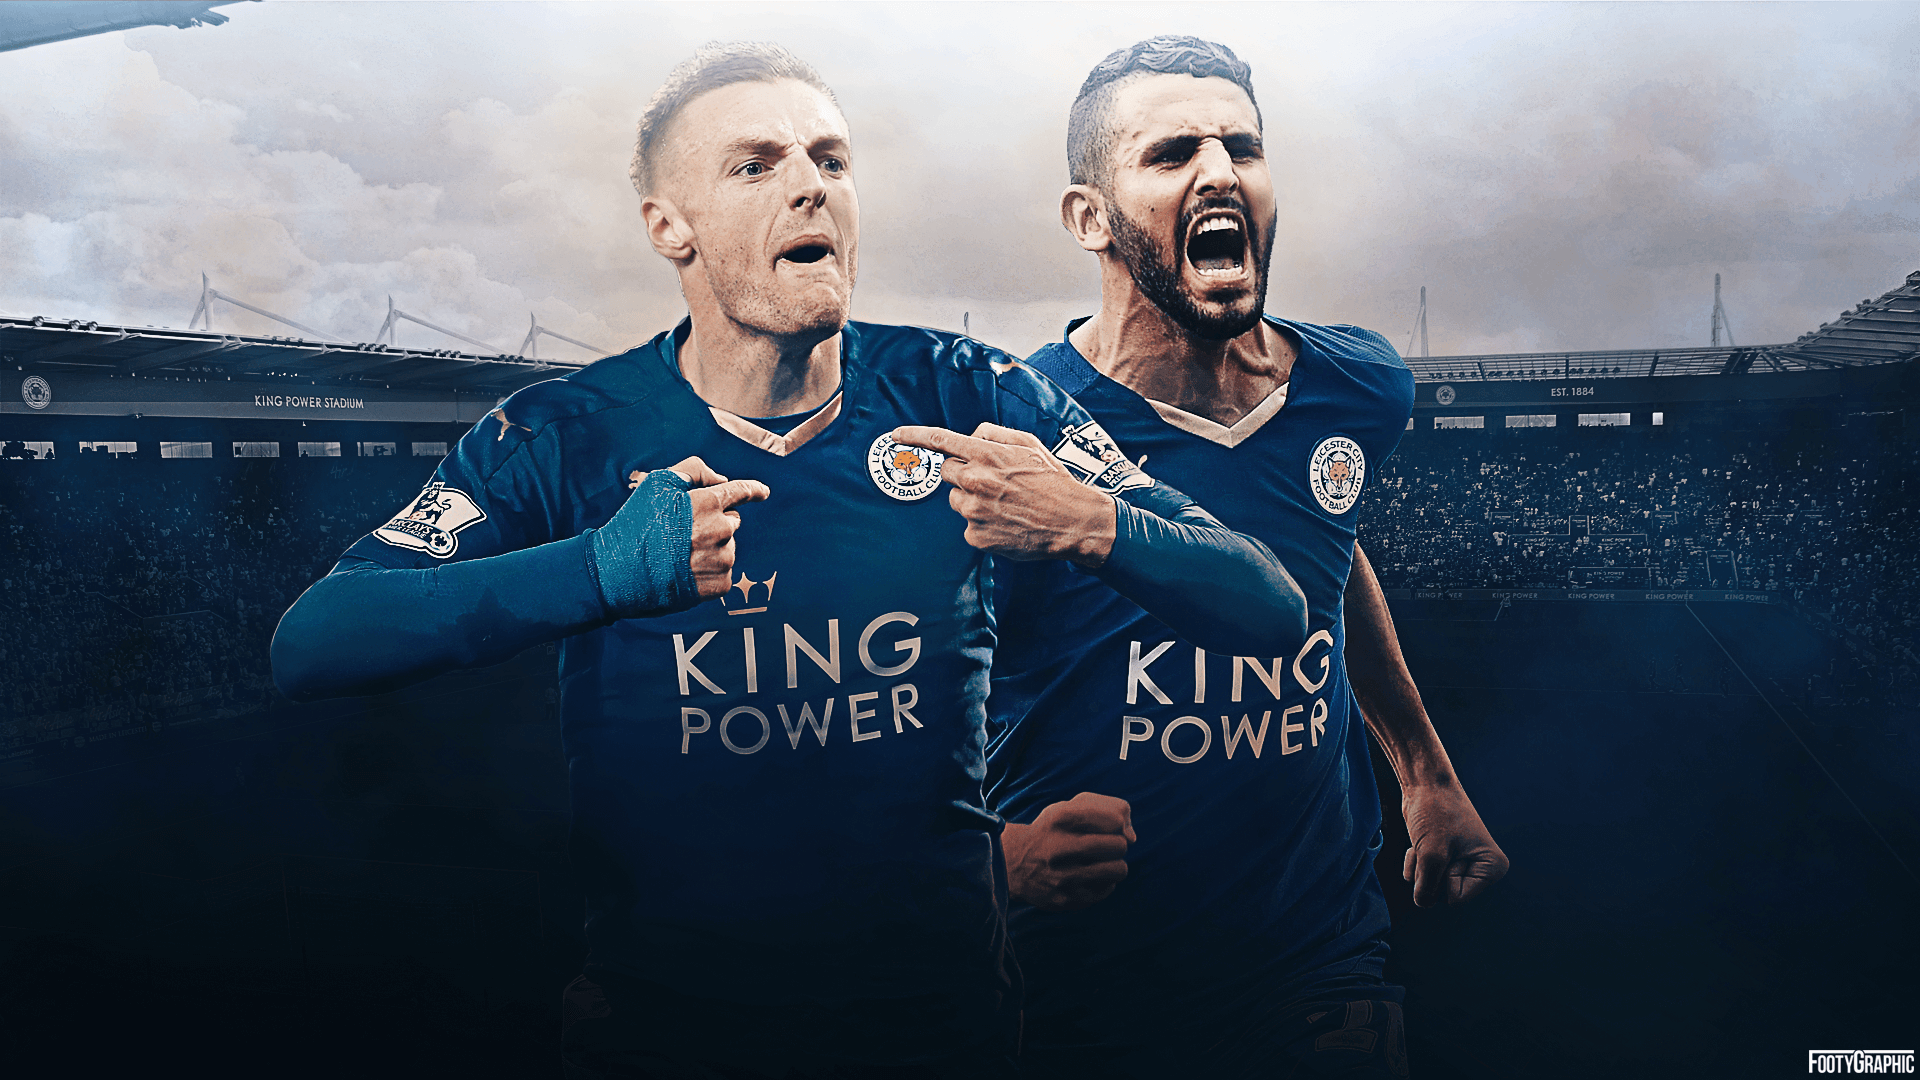 Hd Wallpaper Of Jamie Vardy And Riyad Mahrez In Leicester - Leicester City , HD Wallpaper & Backgrounds